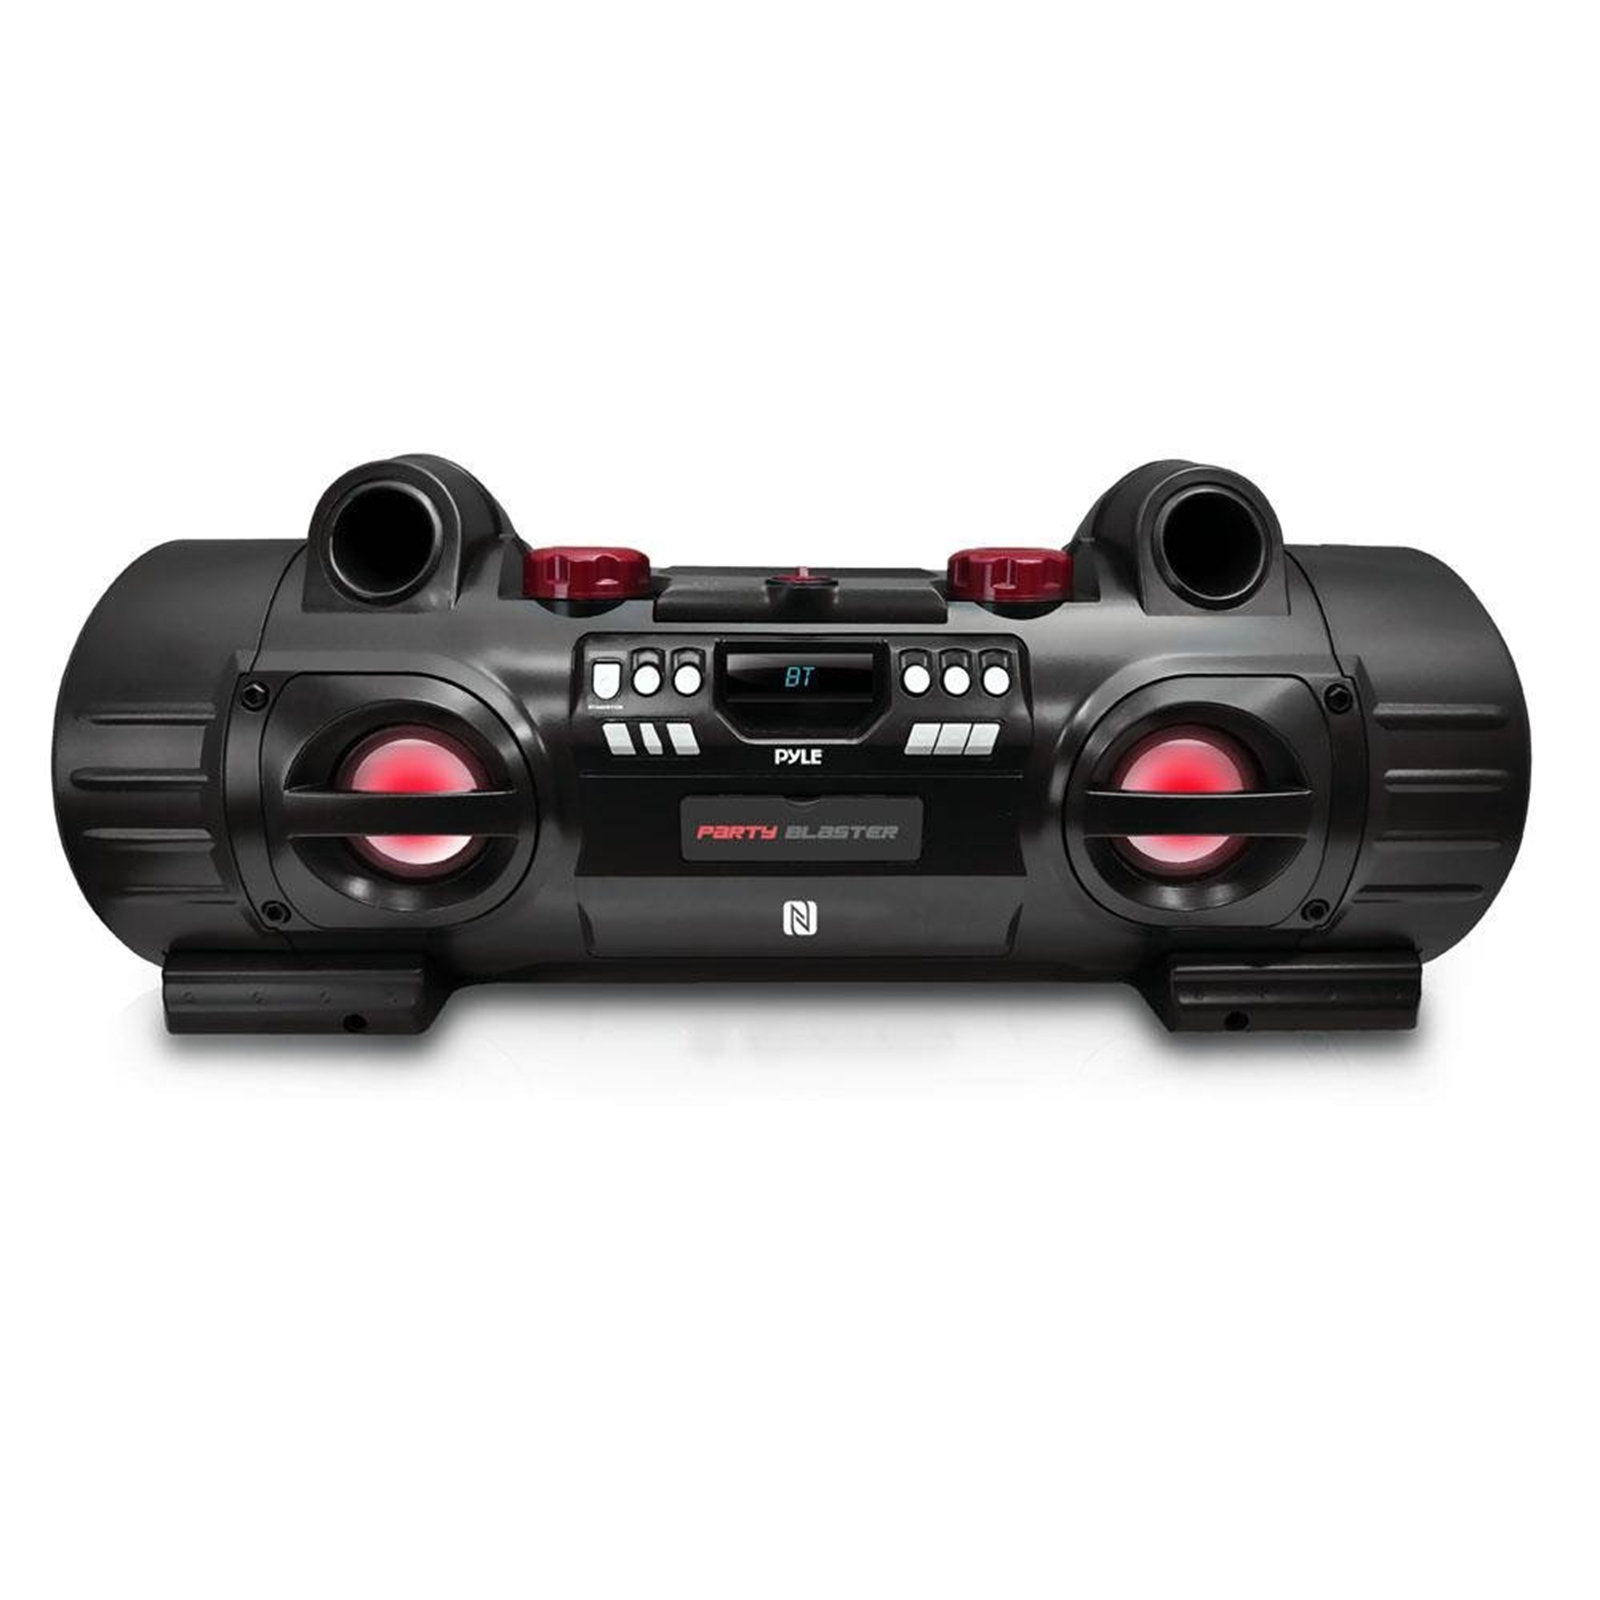 Pyle Pro Pbmspg80 Party Blaster Boombox With Bluetooth & Nfc by Pyle